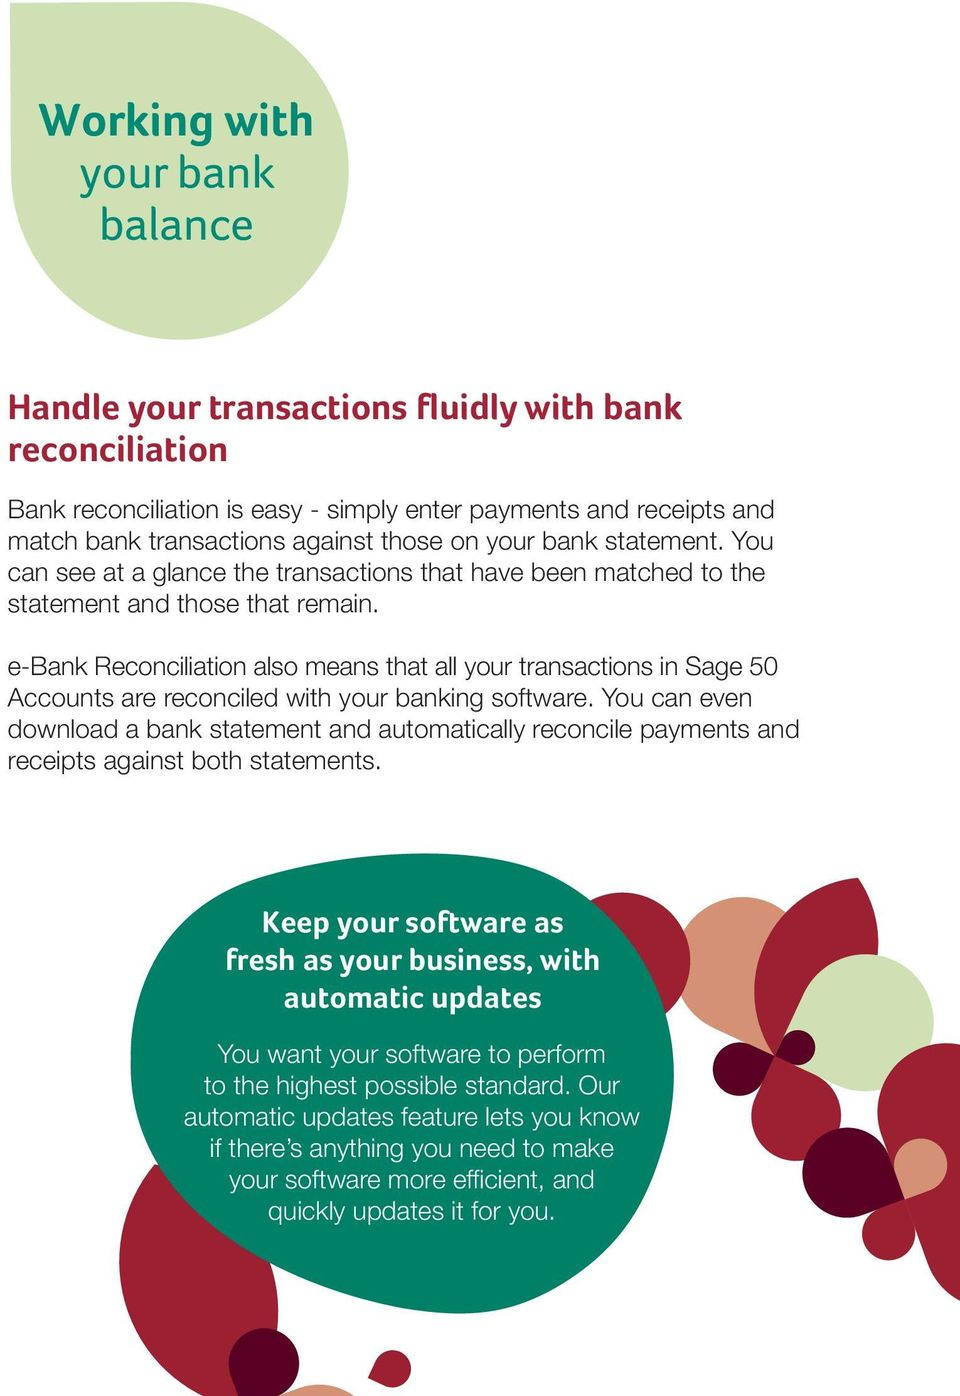 e-bank Reconciliation also means that all your transactions in Sage 50 Accounts are reconciled with your banking software.